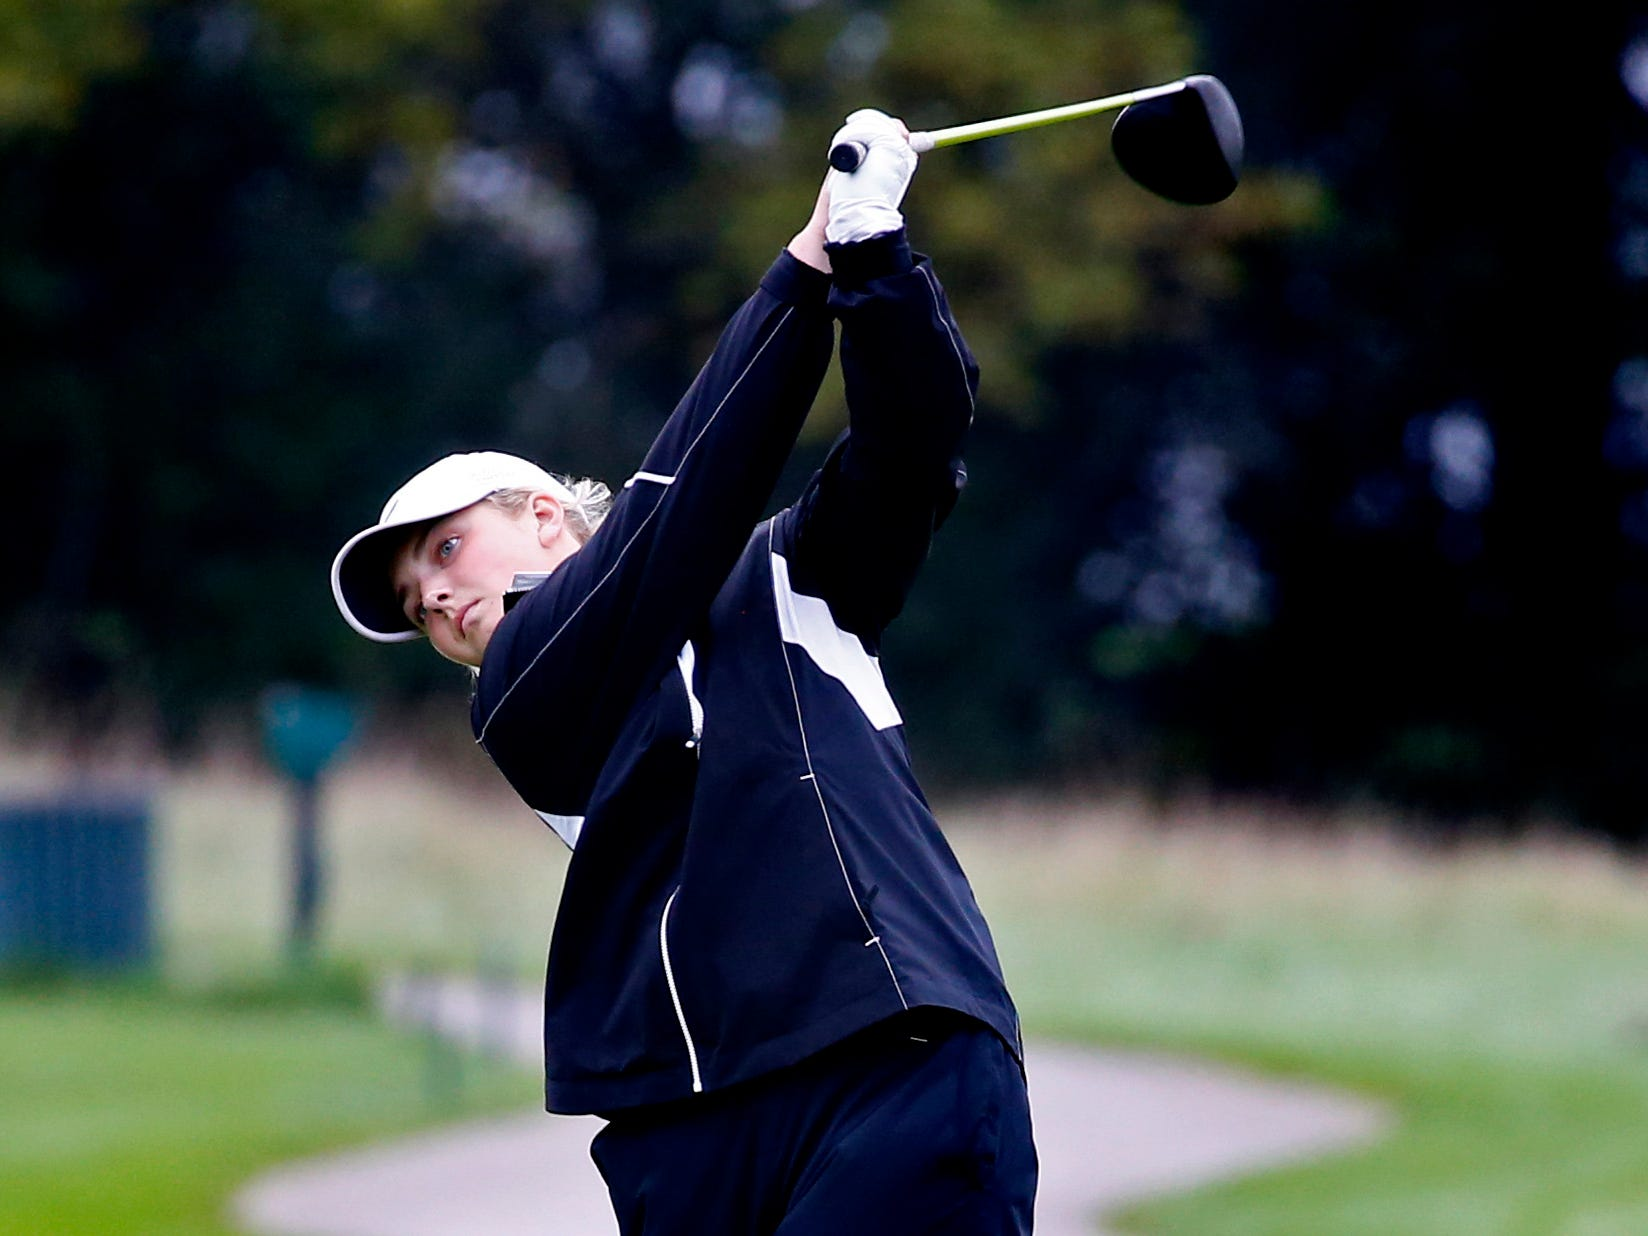 Mukwonago's Ellie Craig tees off the second hole in the WIAA Waukesha sectional at the Broadlands Golf Club in North Prairie on Oct. 2.